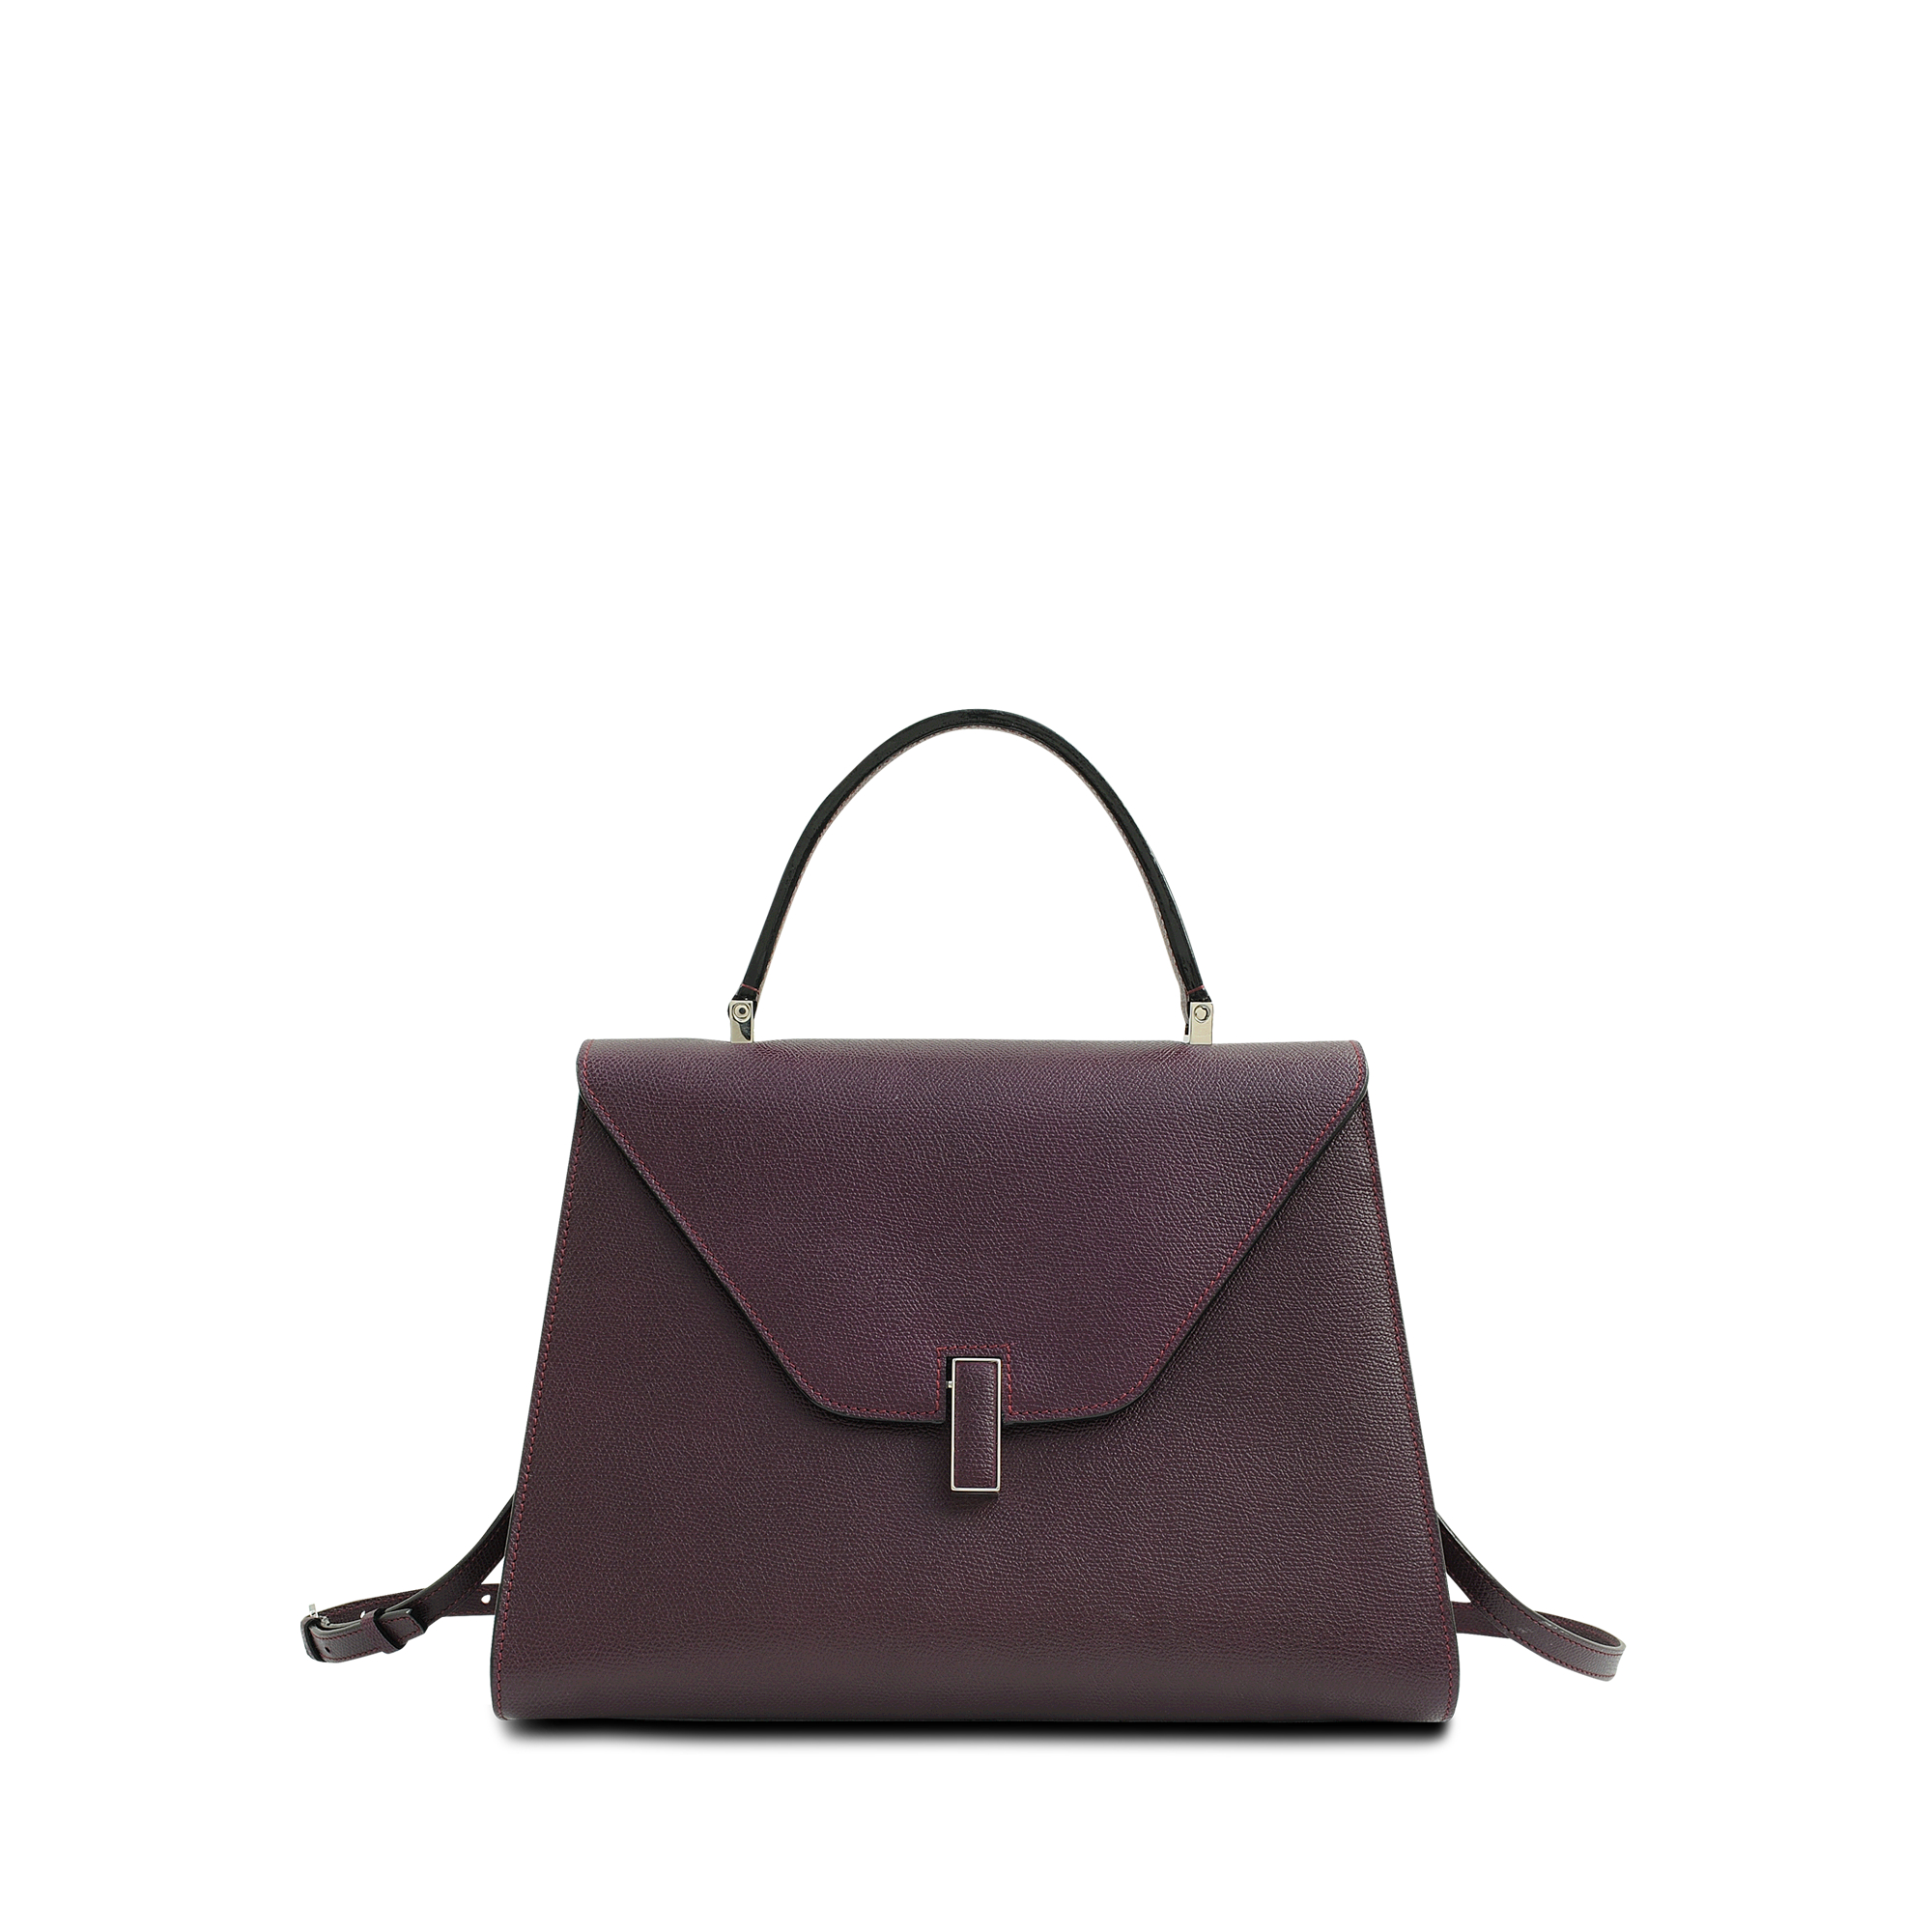 Valextra Isis Flap Bag in Purple